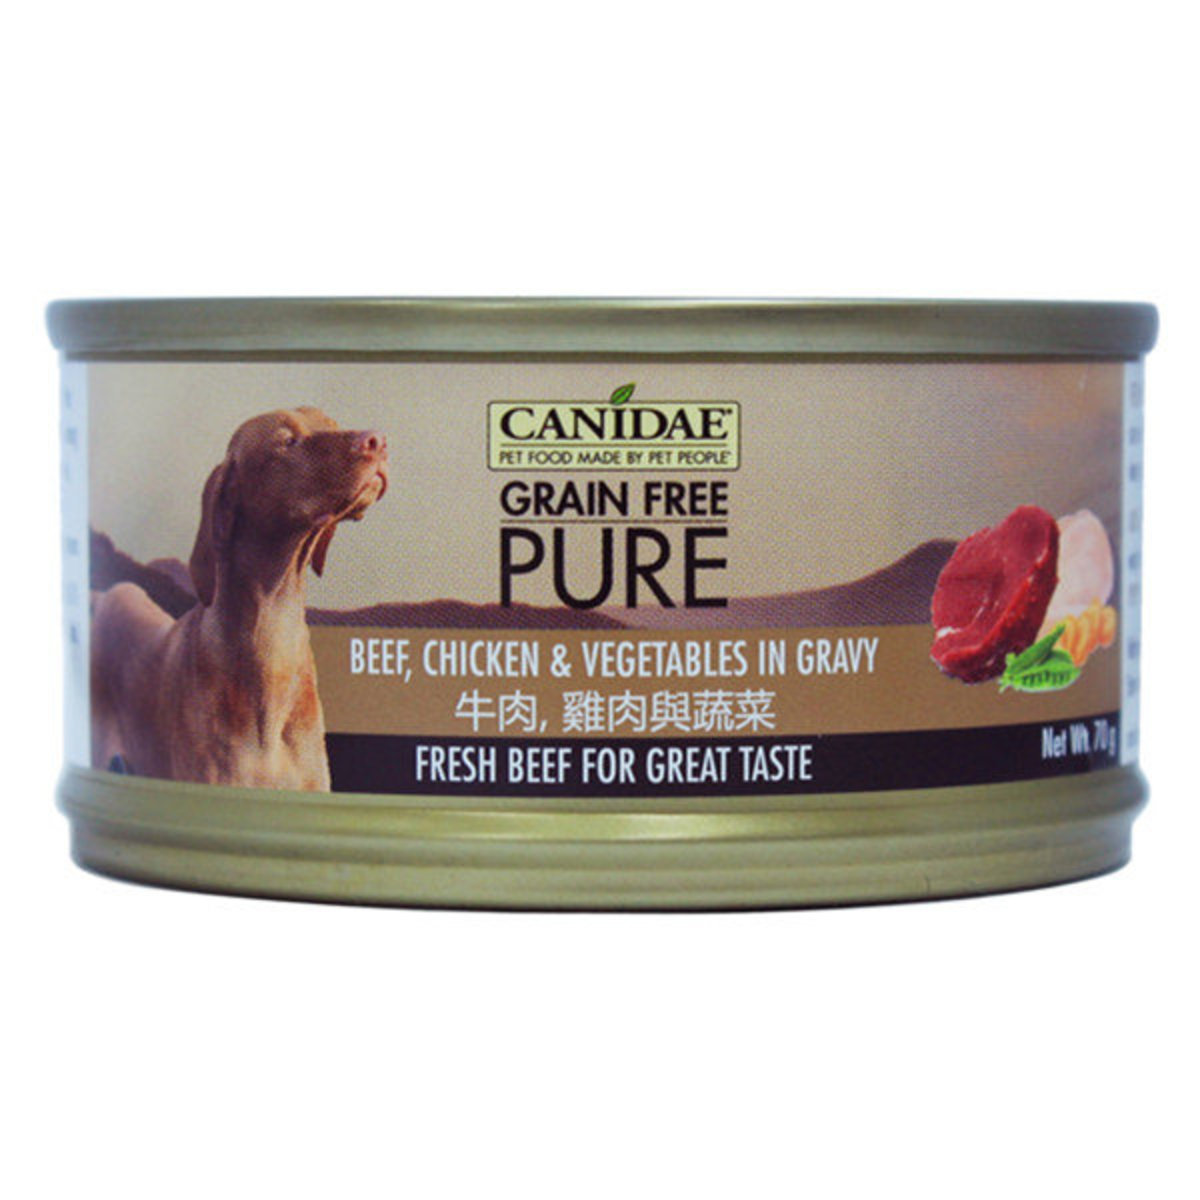 Beef, Chicken & Vegetables in Gravy for Dogs (70g) #6210